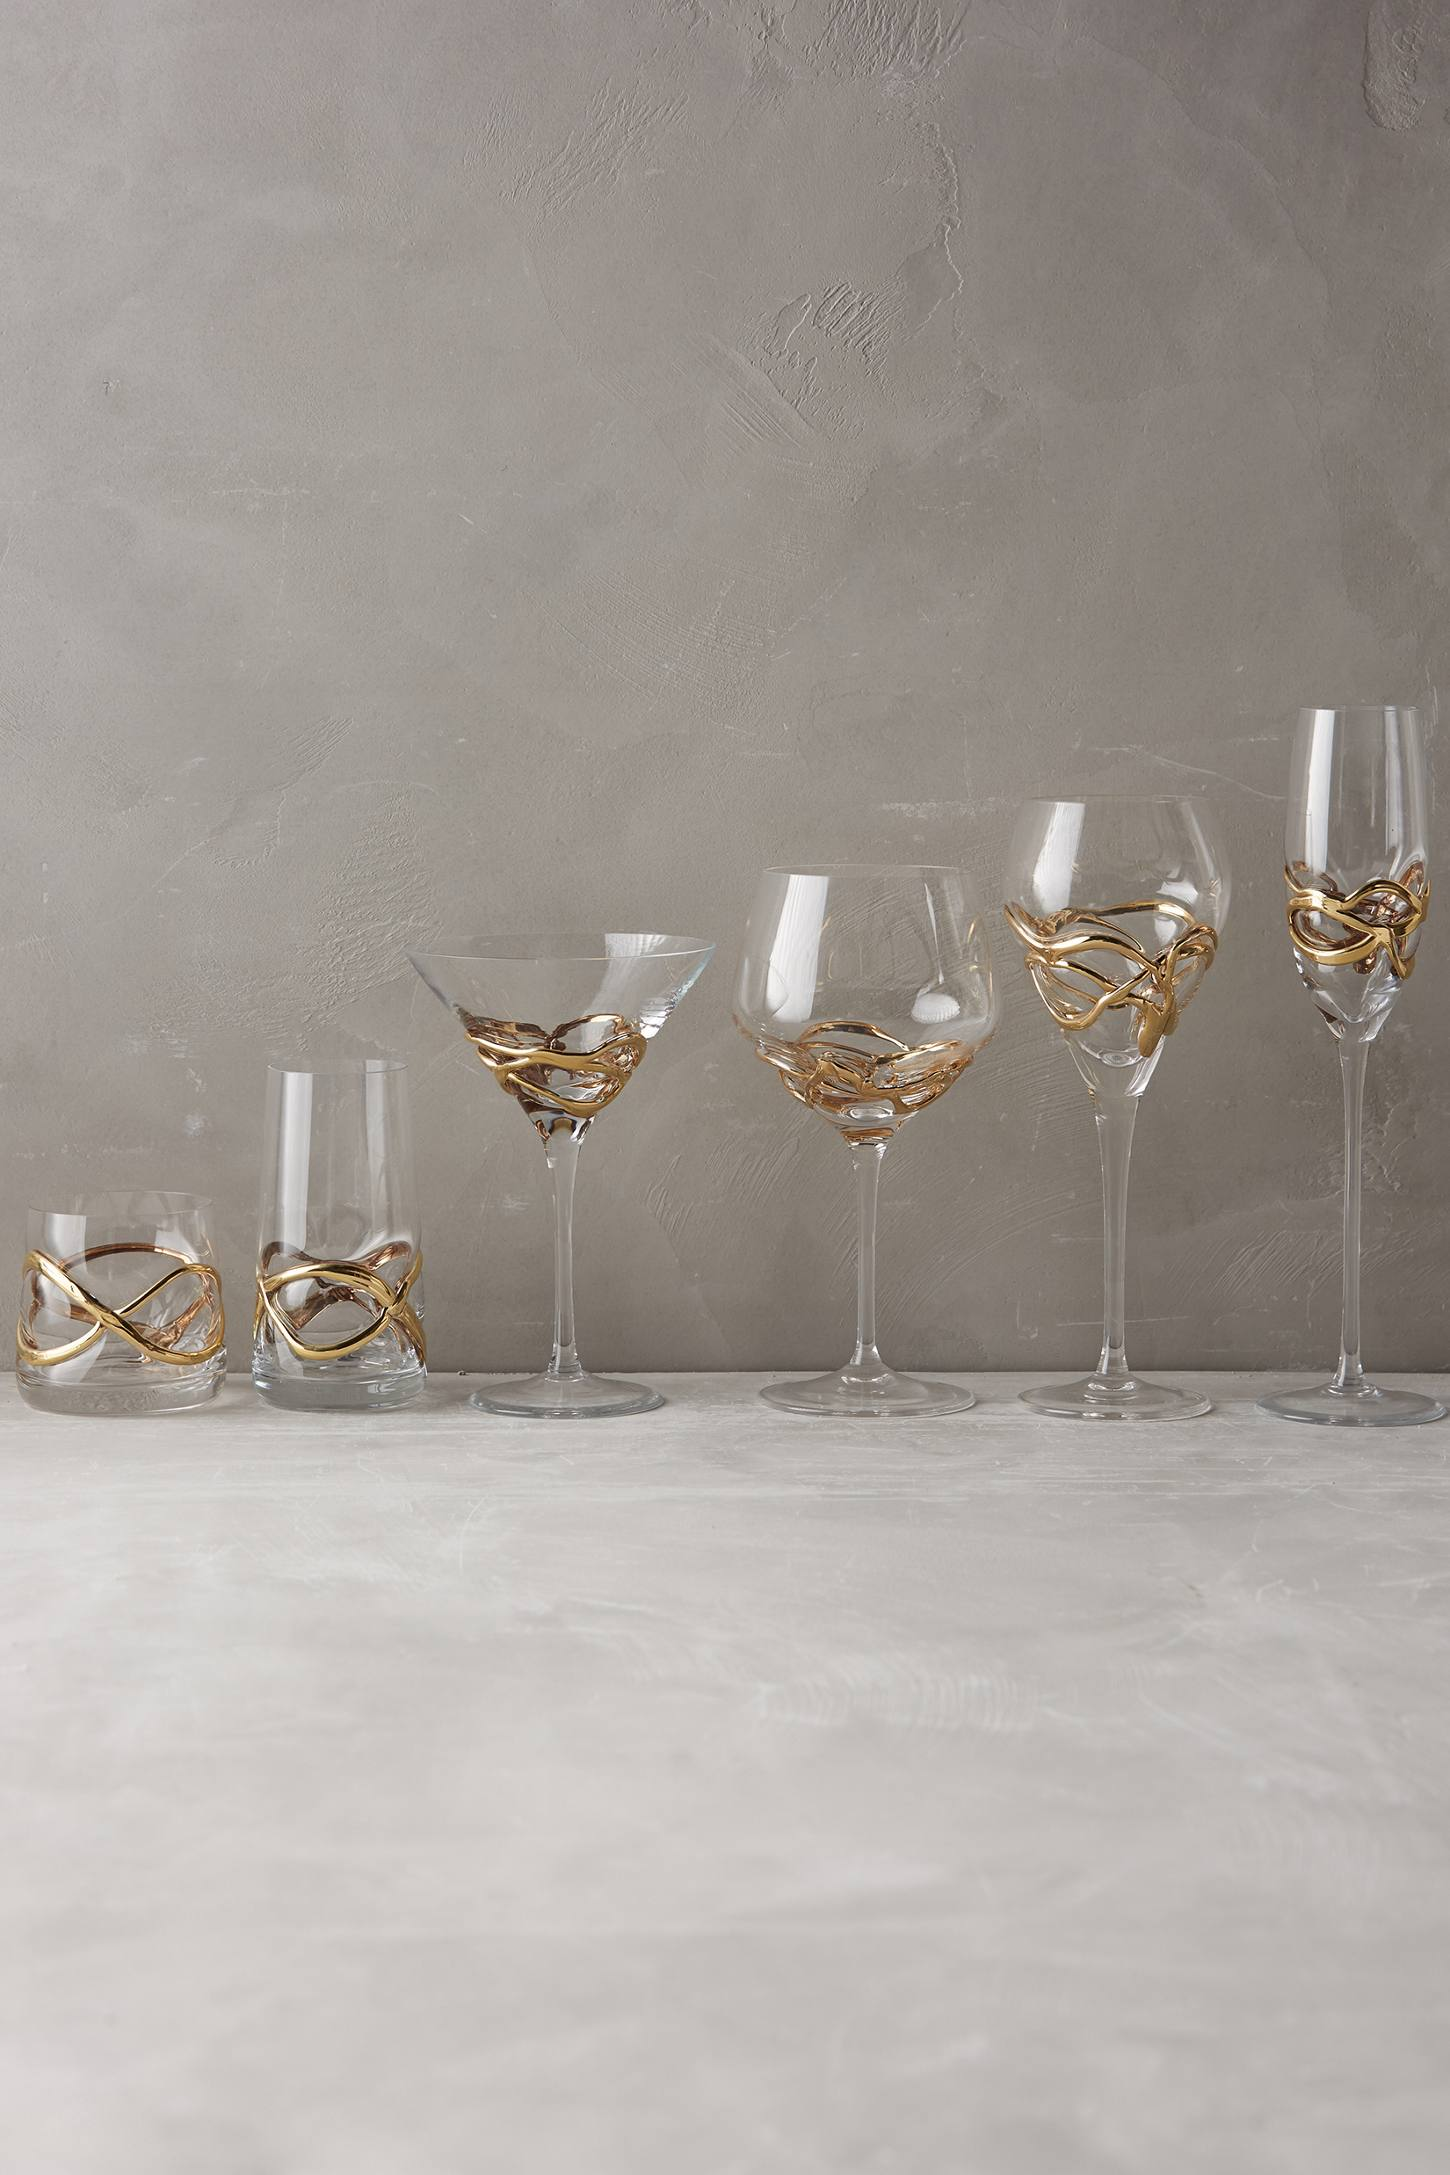 Slide View: 3: Glimmer-Wrapped White Wine Glass